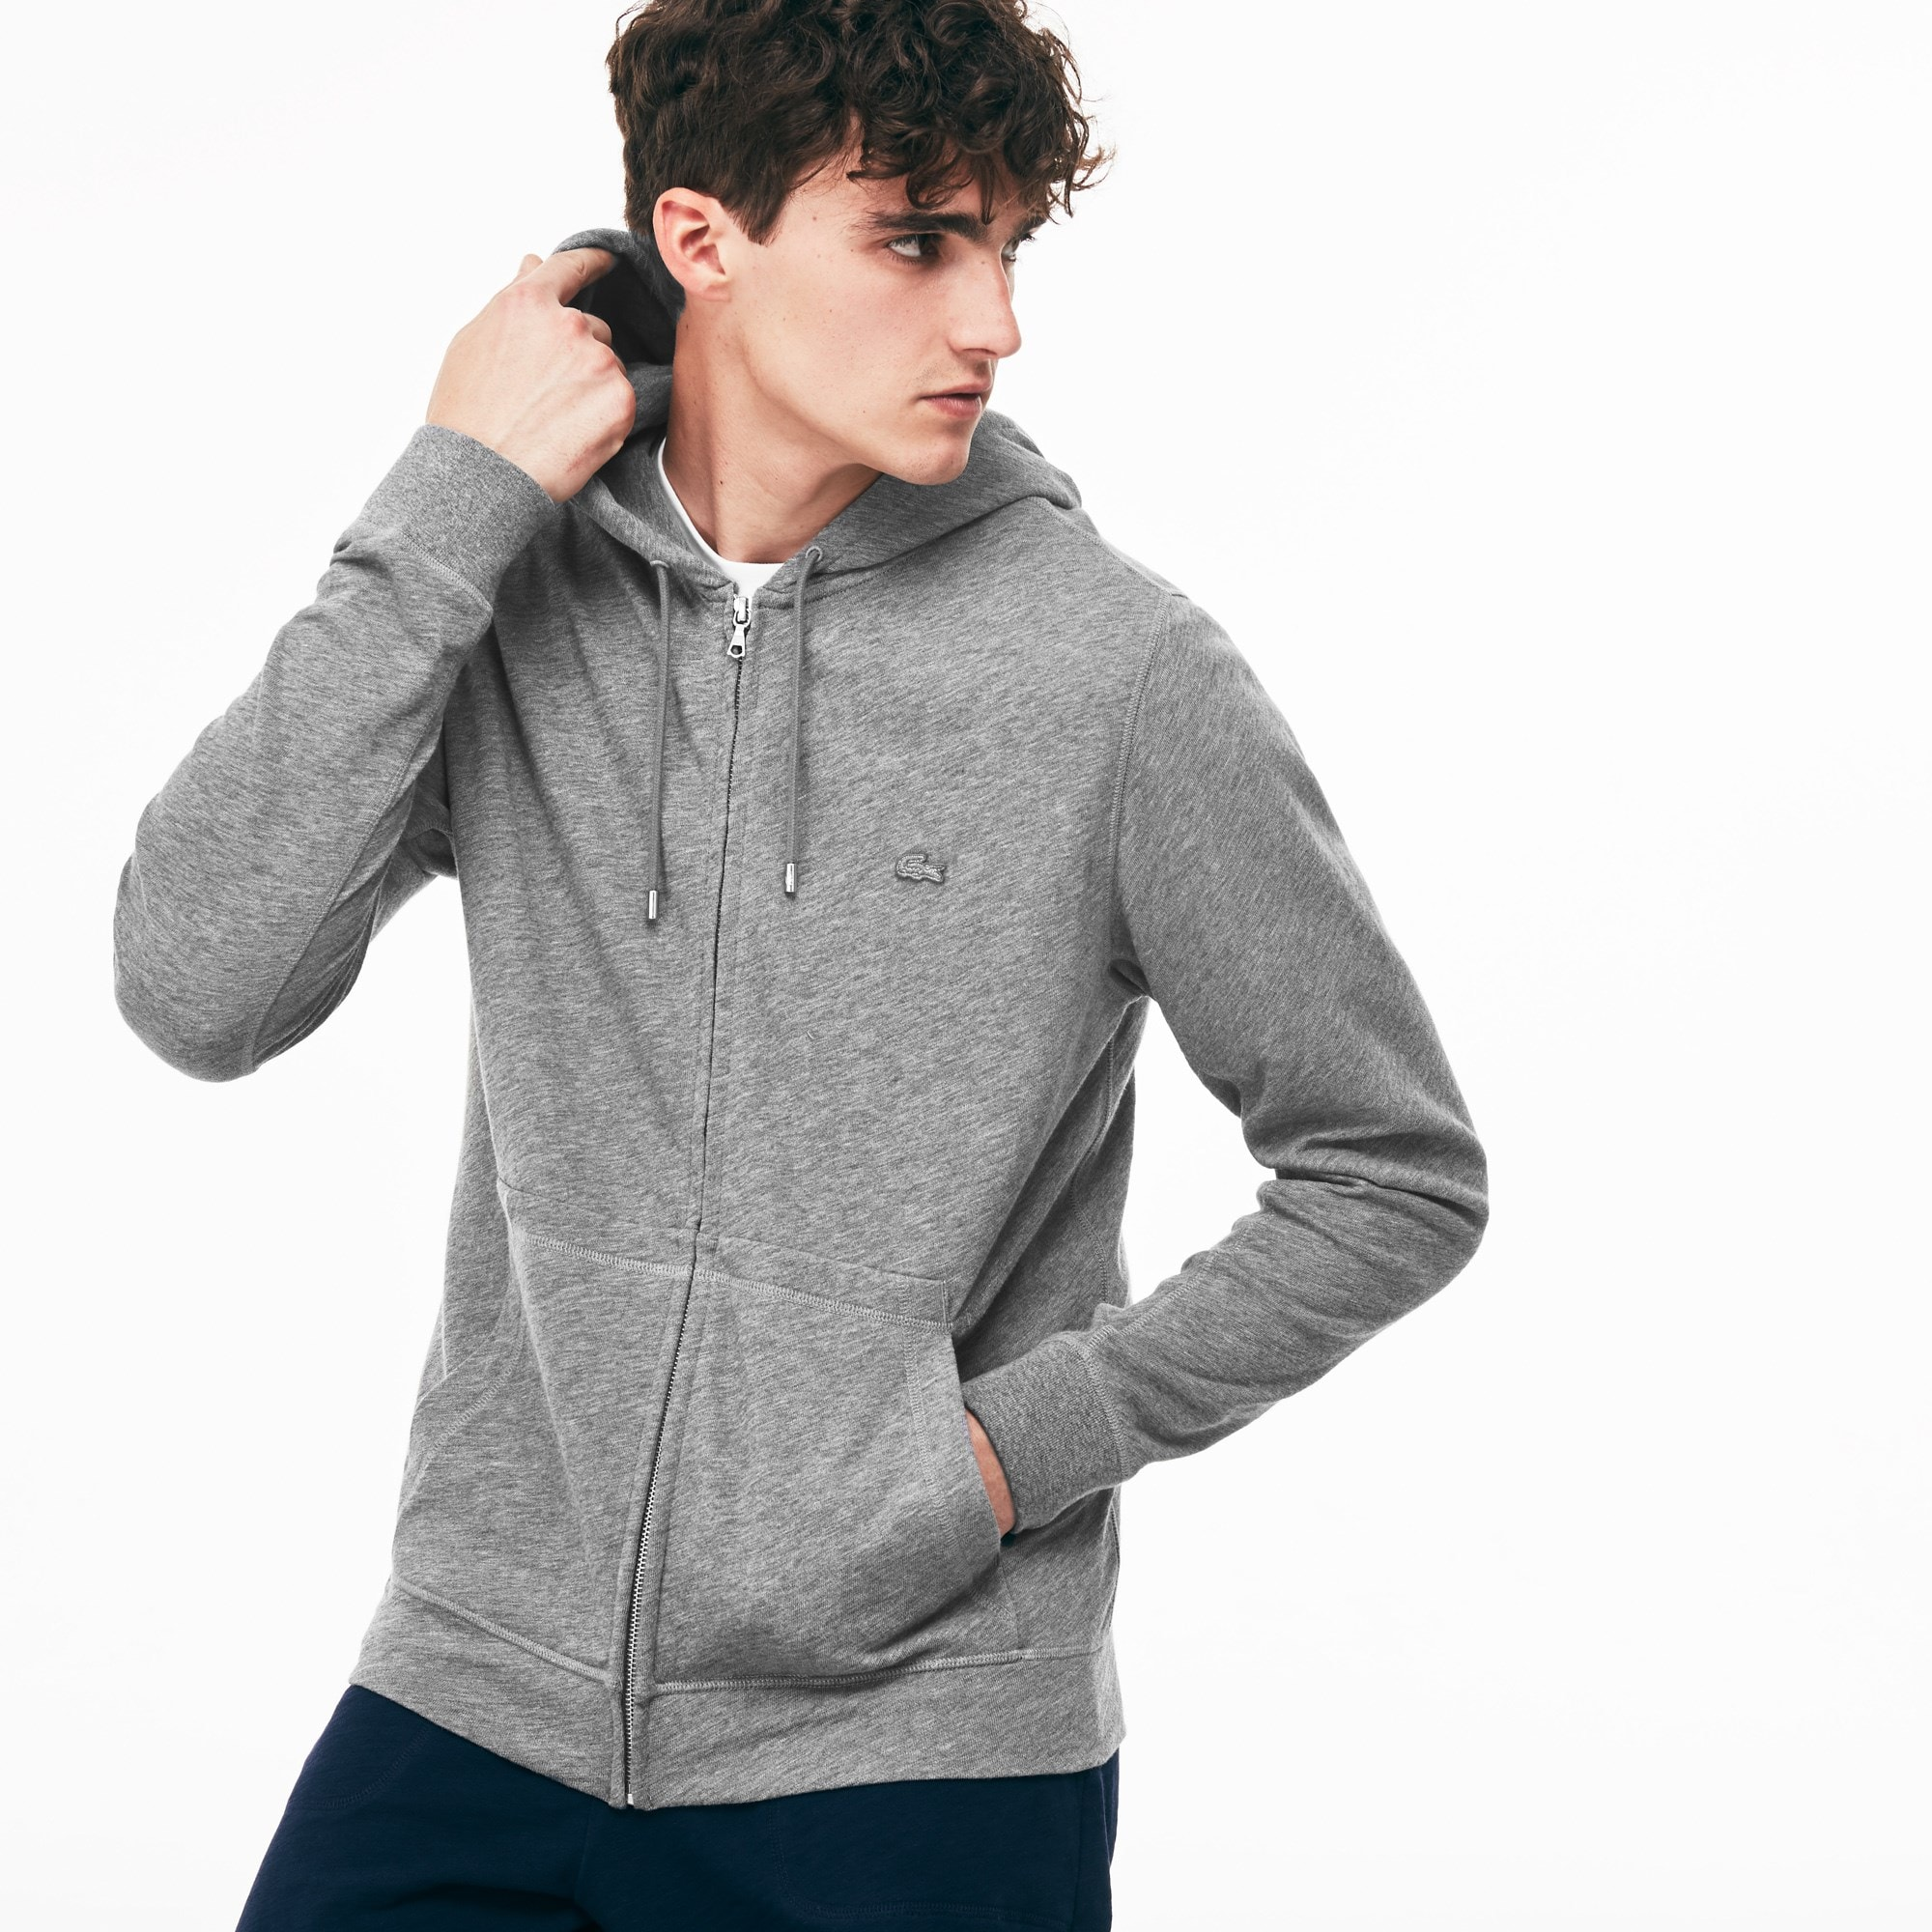 Men's Lacoste MOTION Hooded Cotton Fleece Zip Sweatshirt